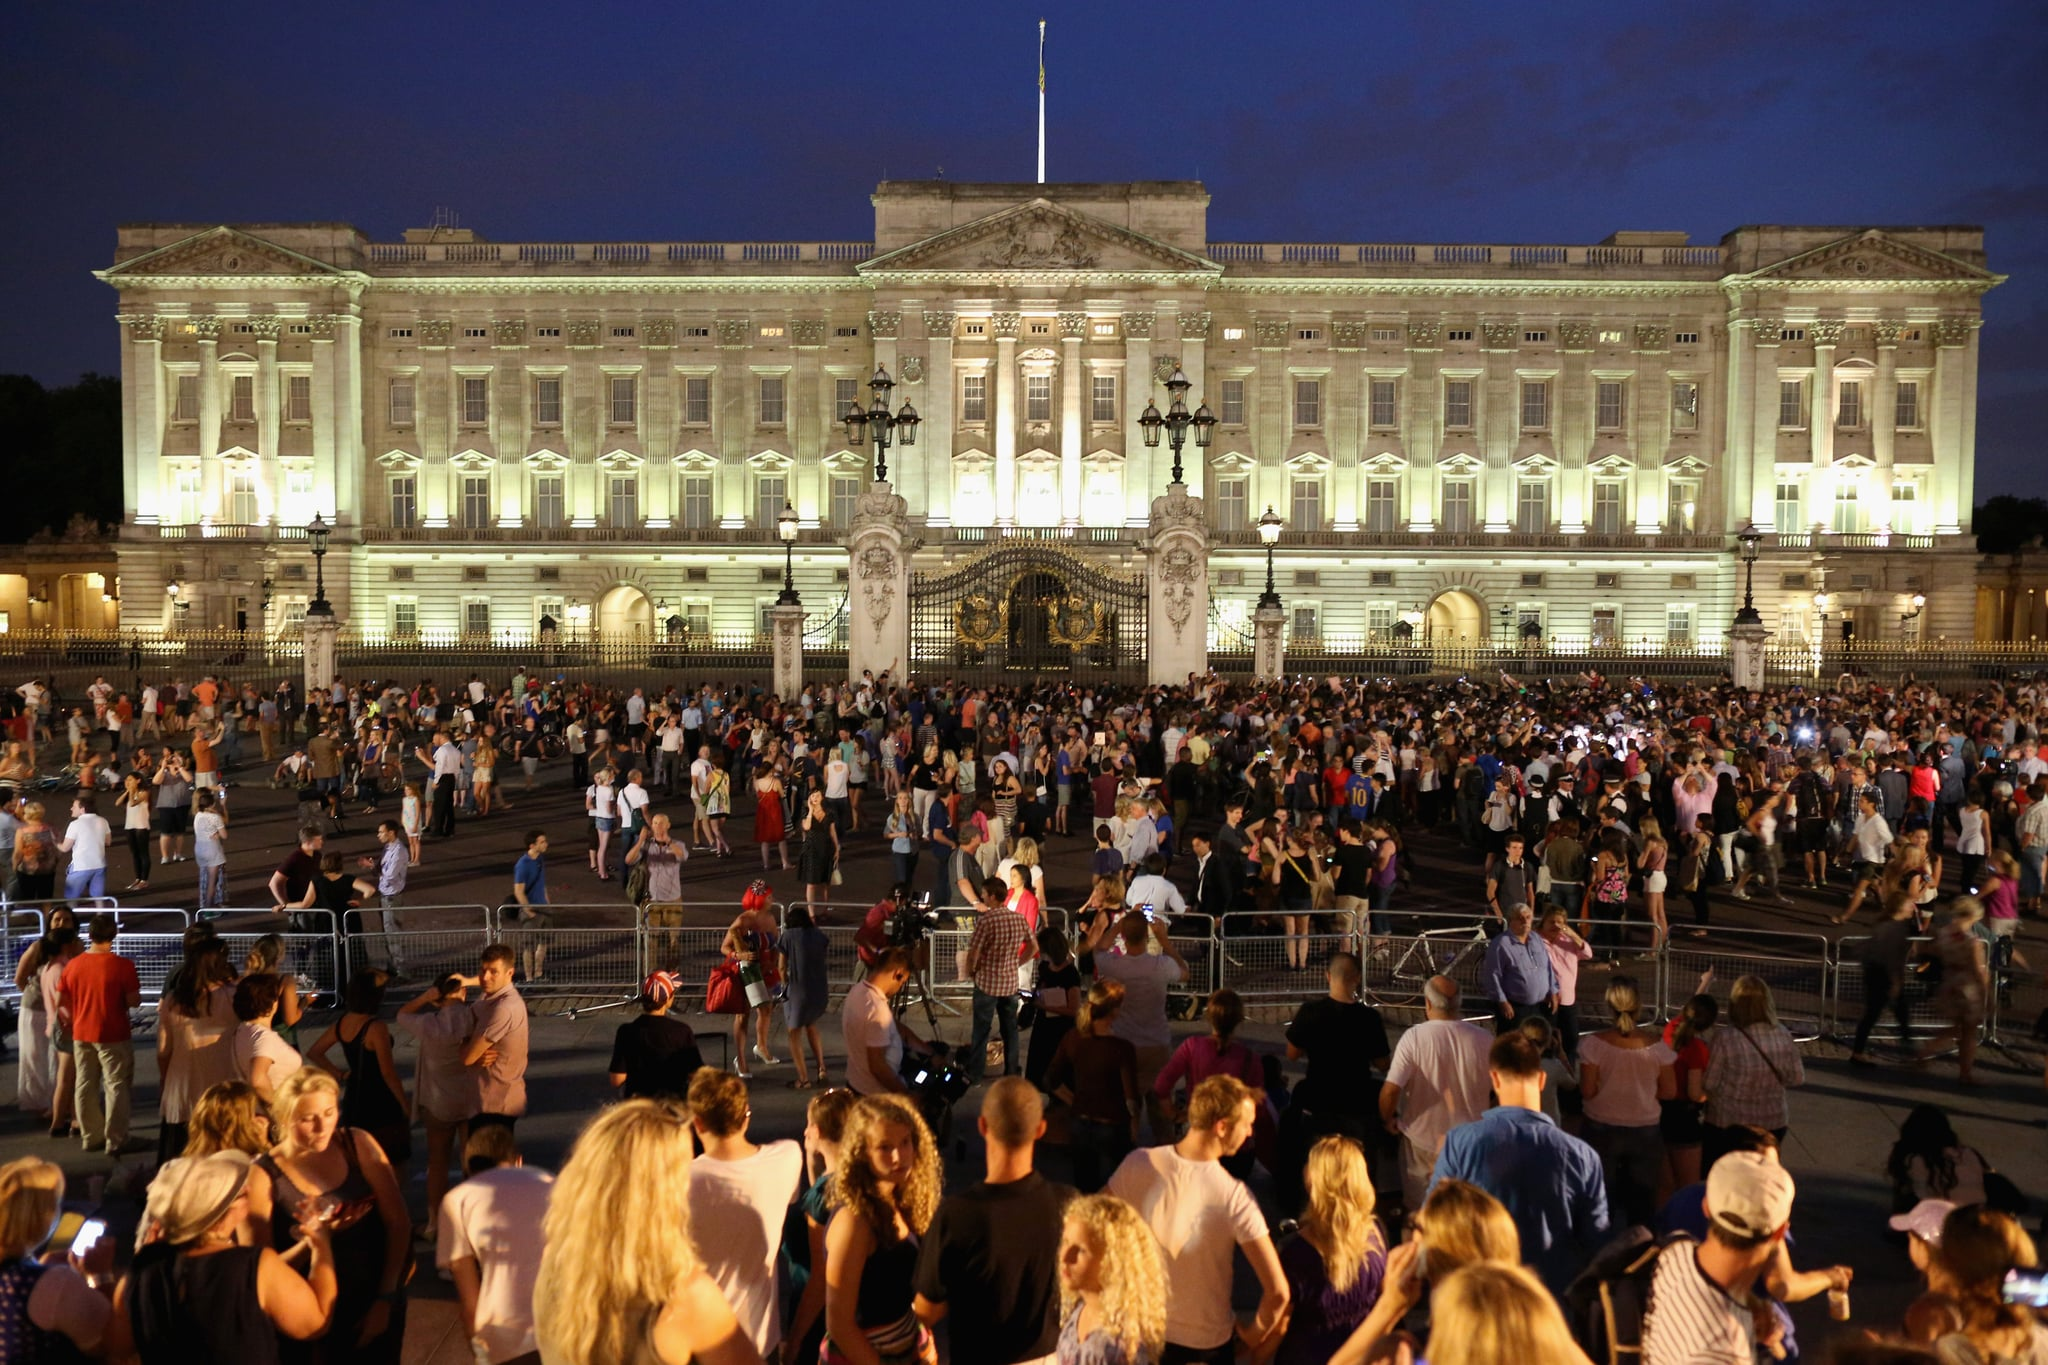 People flocked to Buckingham Palace following the birth of the Prince of Cambridge.